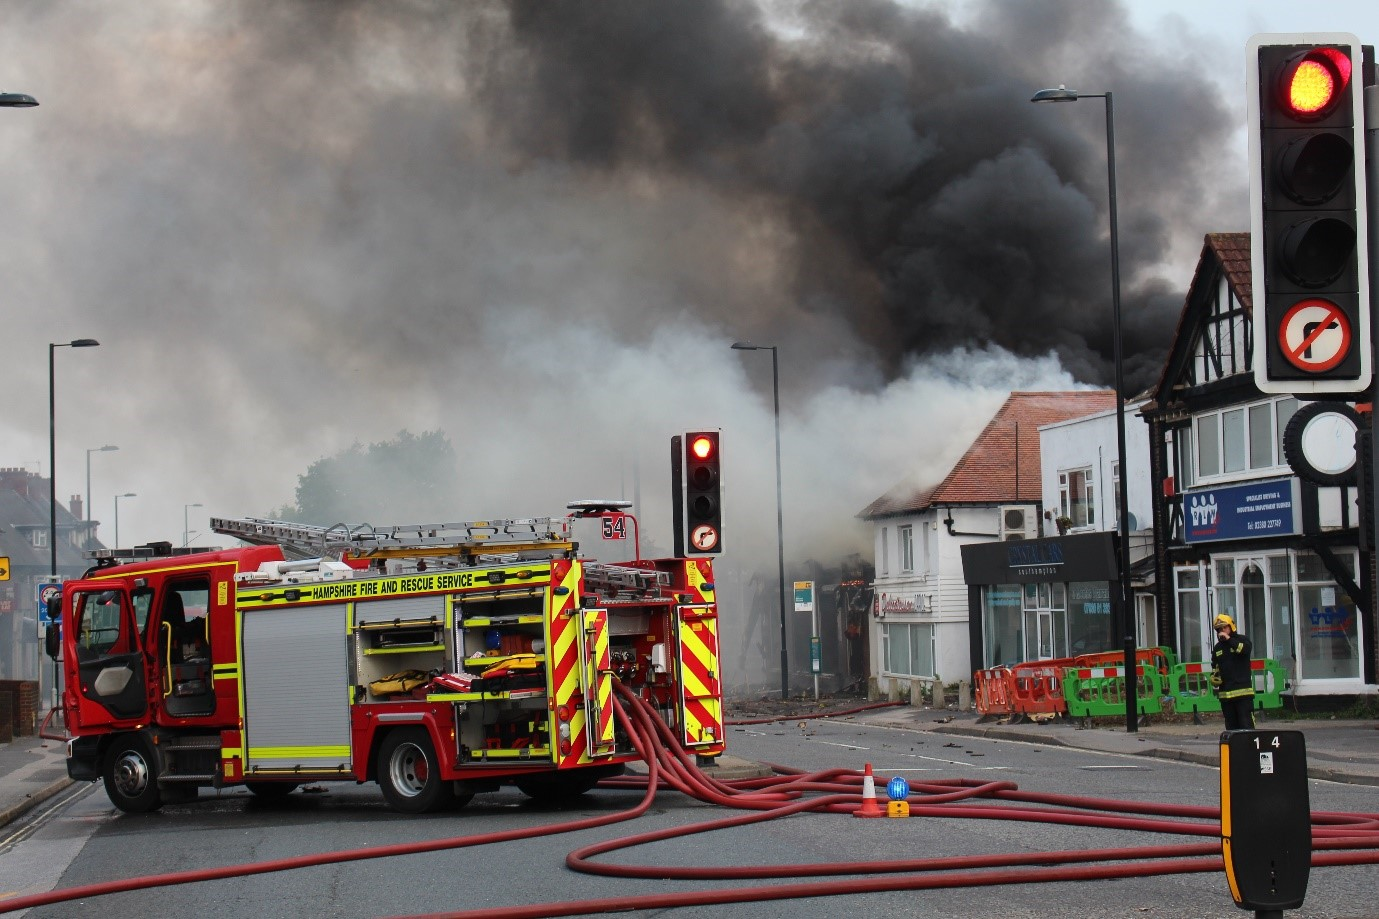 2016 The Flower Factory Fire Engines Diagram Traffic Cone Photos Taken By Hampshire And Rescue Service Hfrs Investigation Team Members Wm Andy Earl Or Robin Furniss With Thanks To Sm Damian Watts